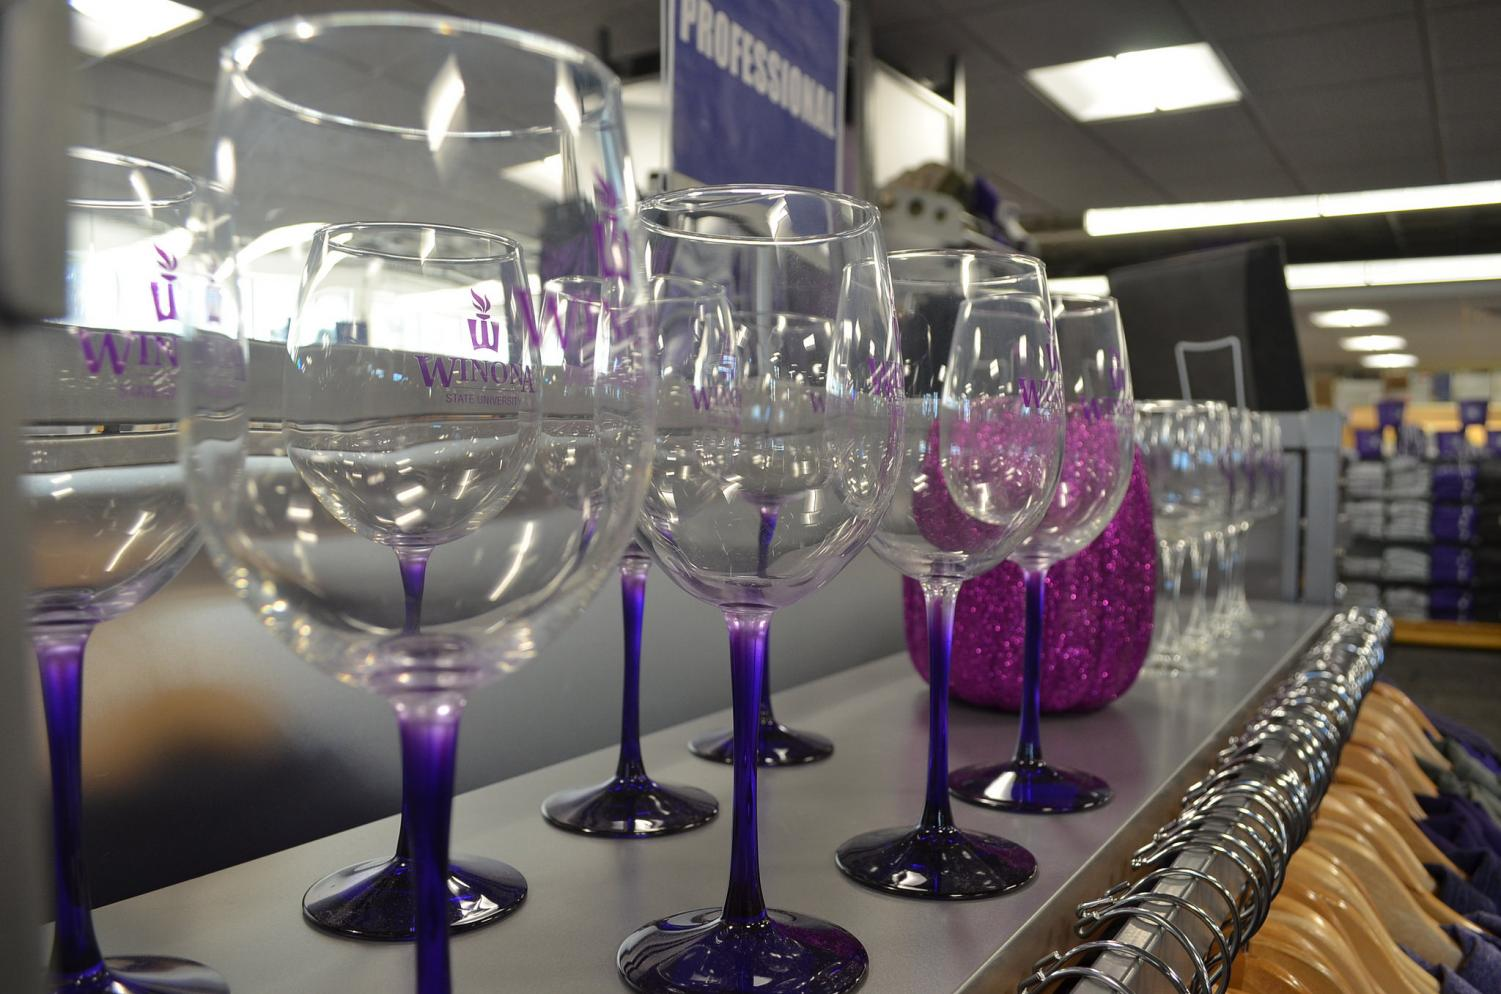 Winona State University wine glasses are set on in the Winona State bookstore. Winona State, which is a dry campus, sells multiple drinkware items which are typically used for alcoholic beverages.